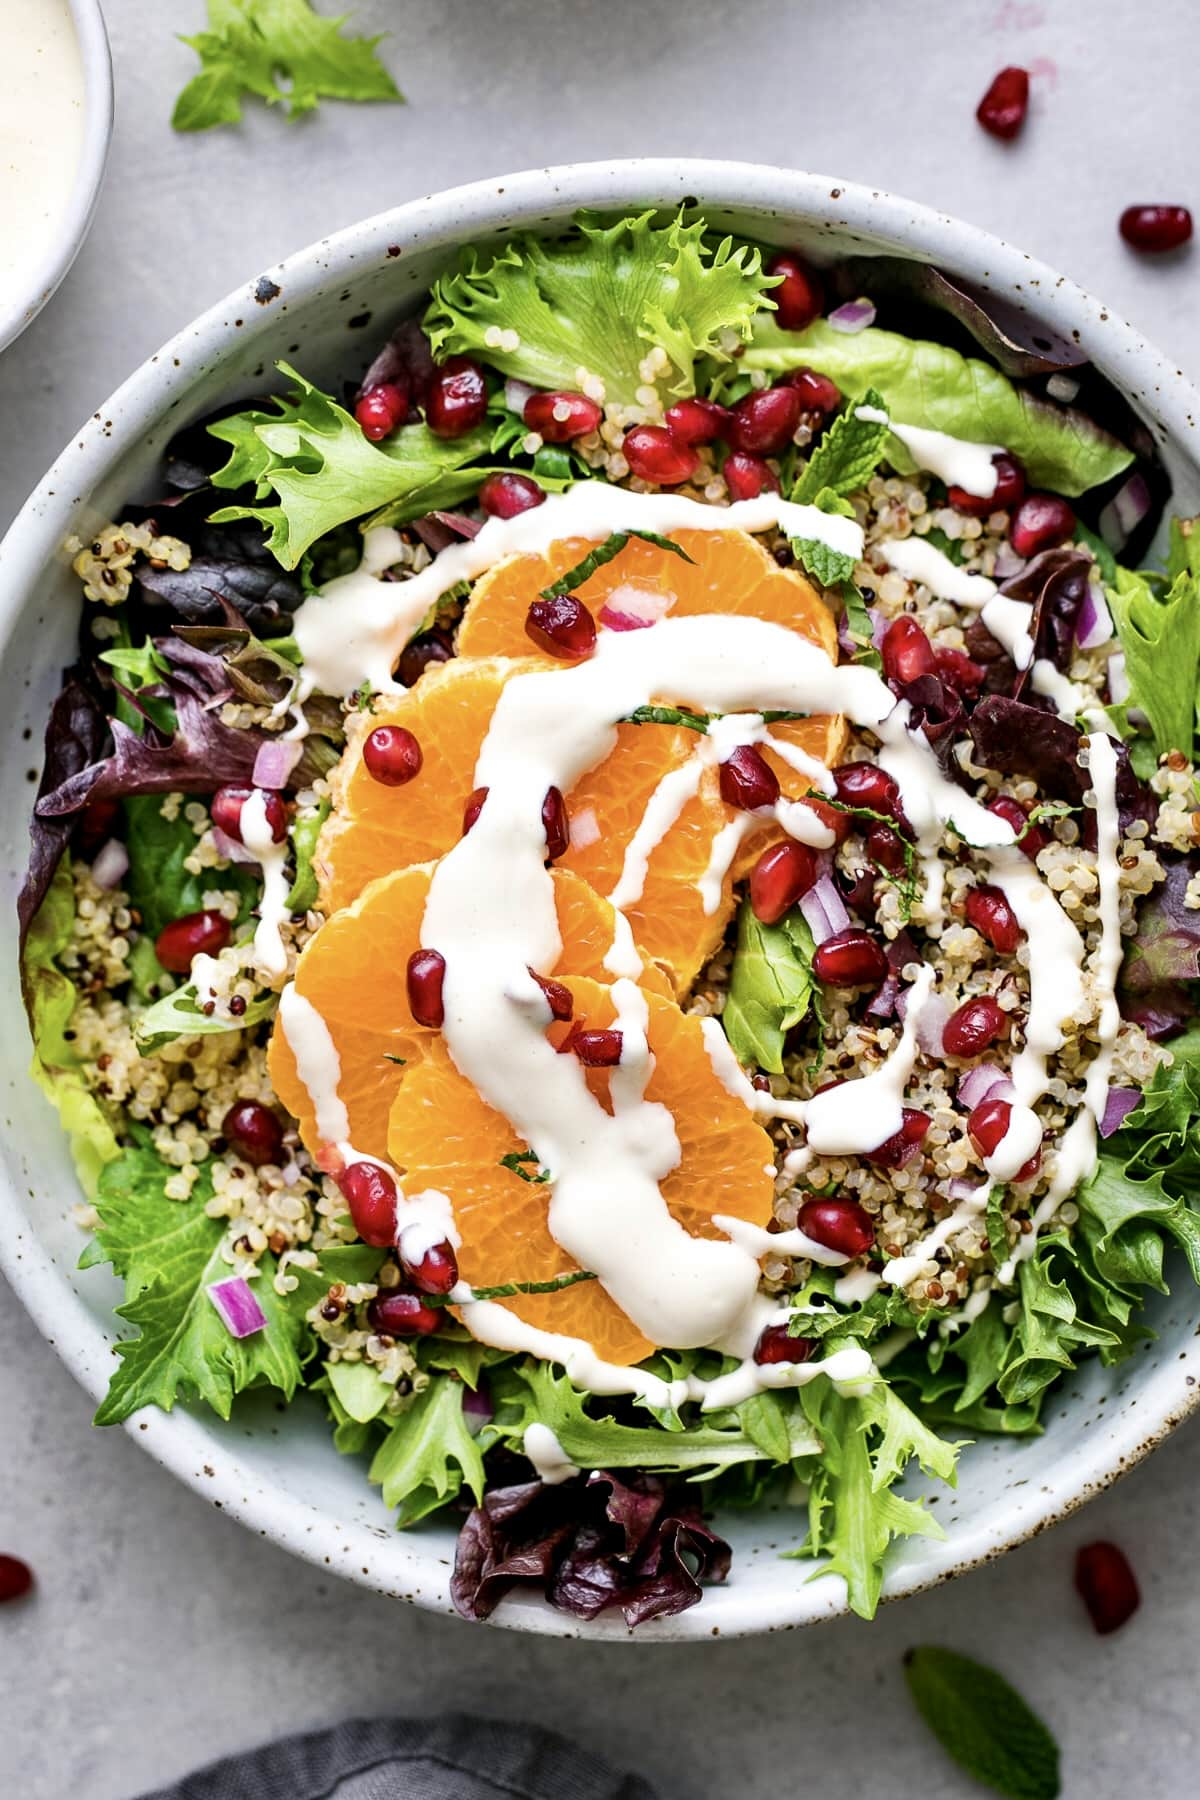 top down view of winter salad with items surrounding.